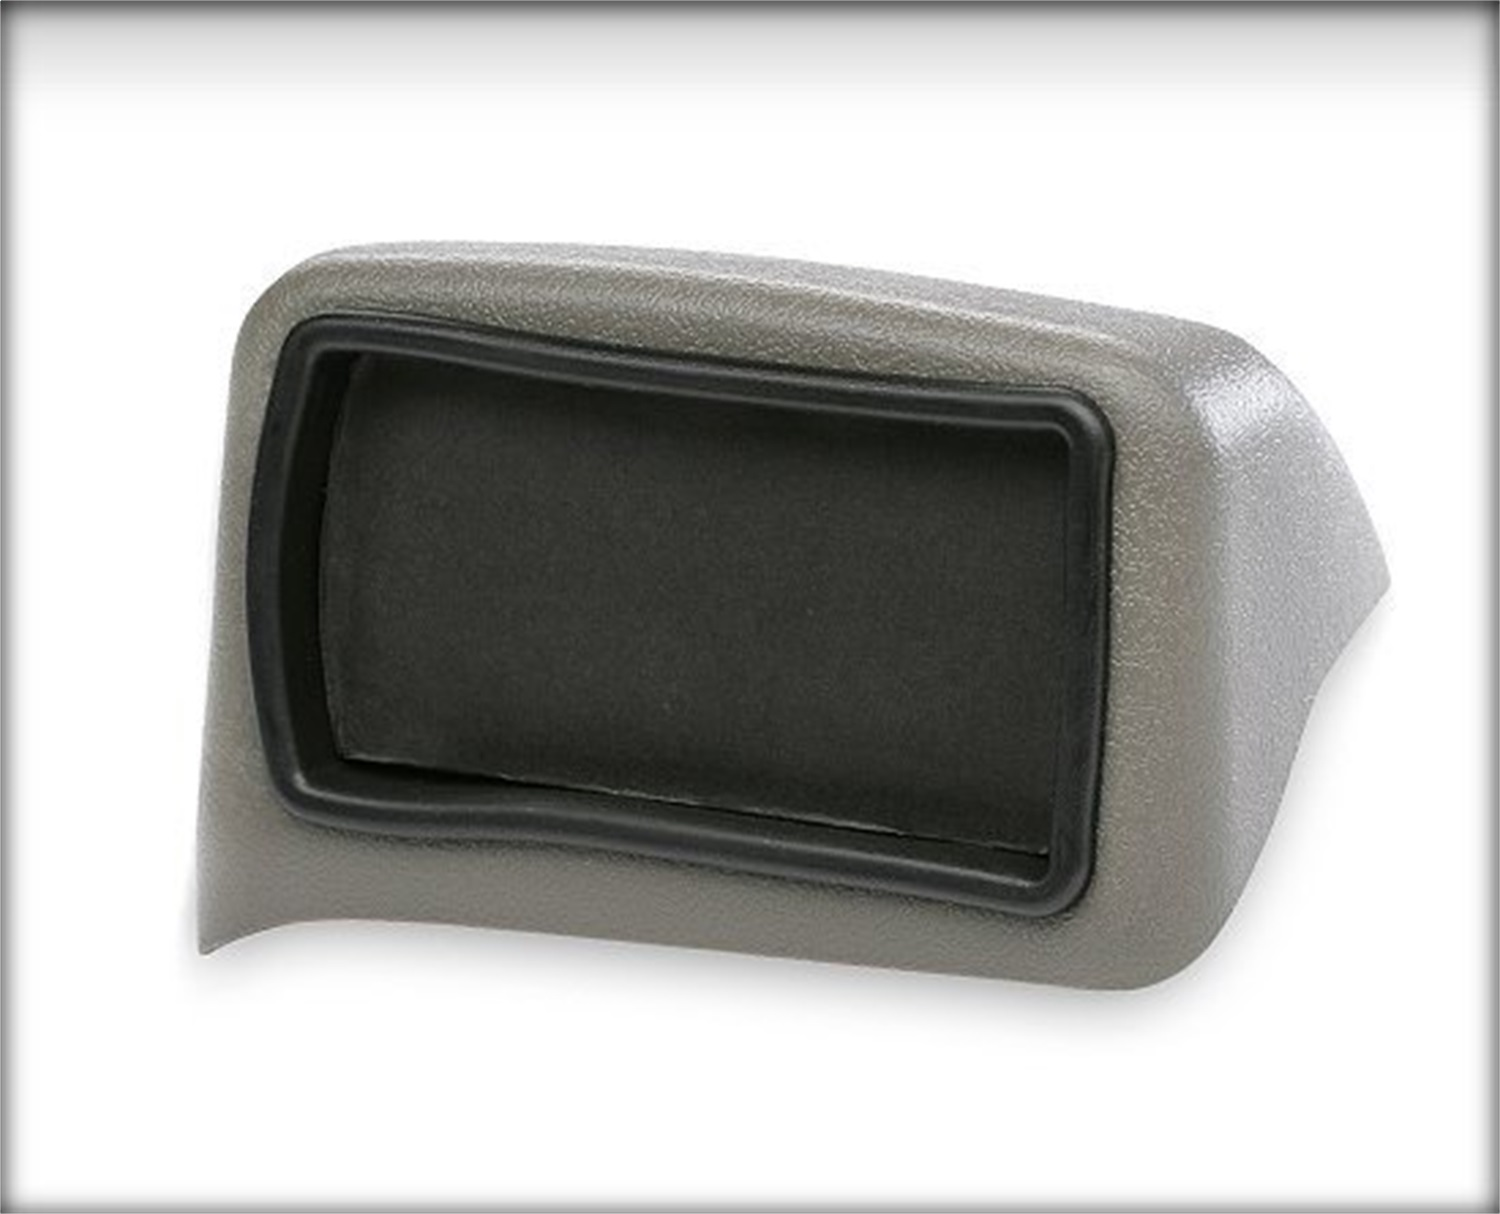 Edge Products 18500 1999-2004 FORD F-SERIES DASH POD (Comes with CTS and CTS2 adaptors)